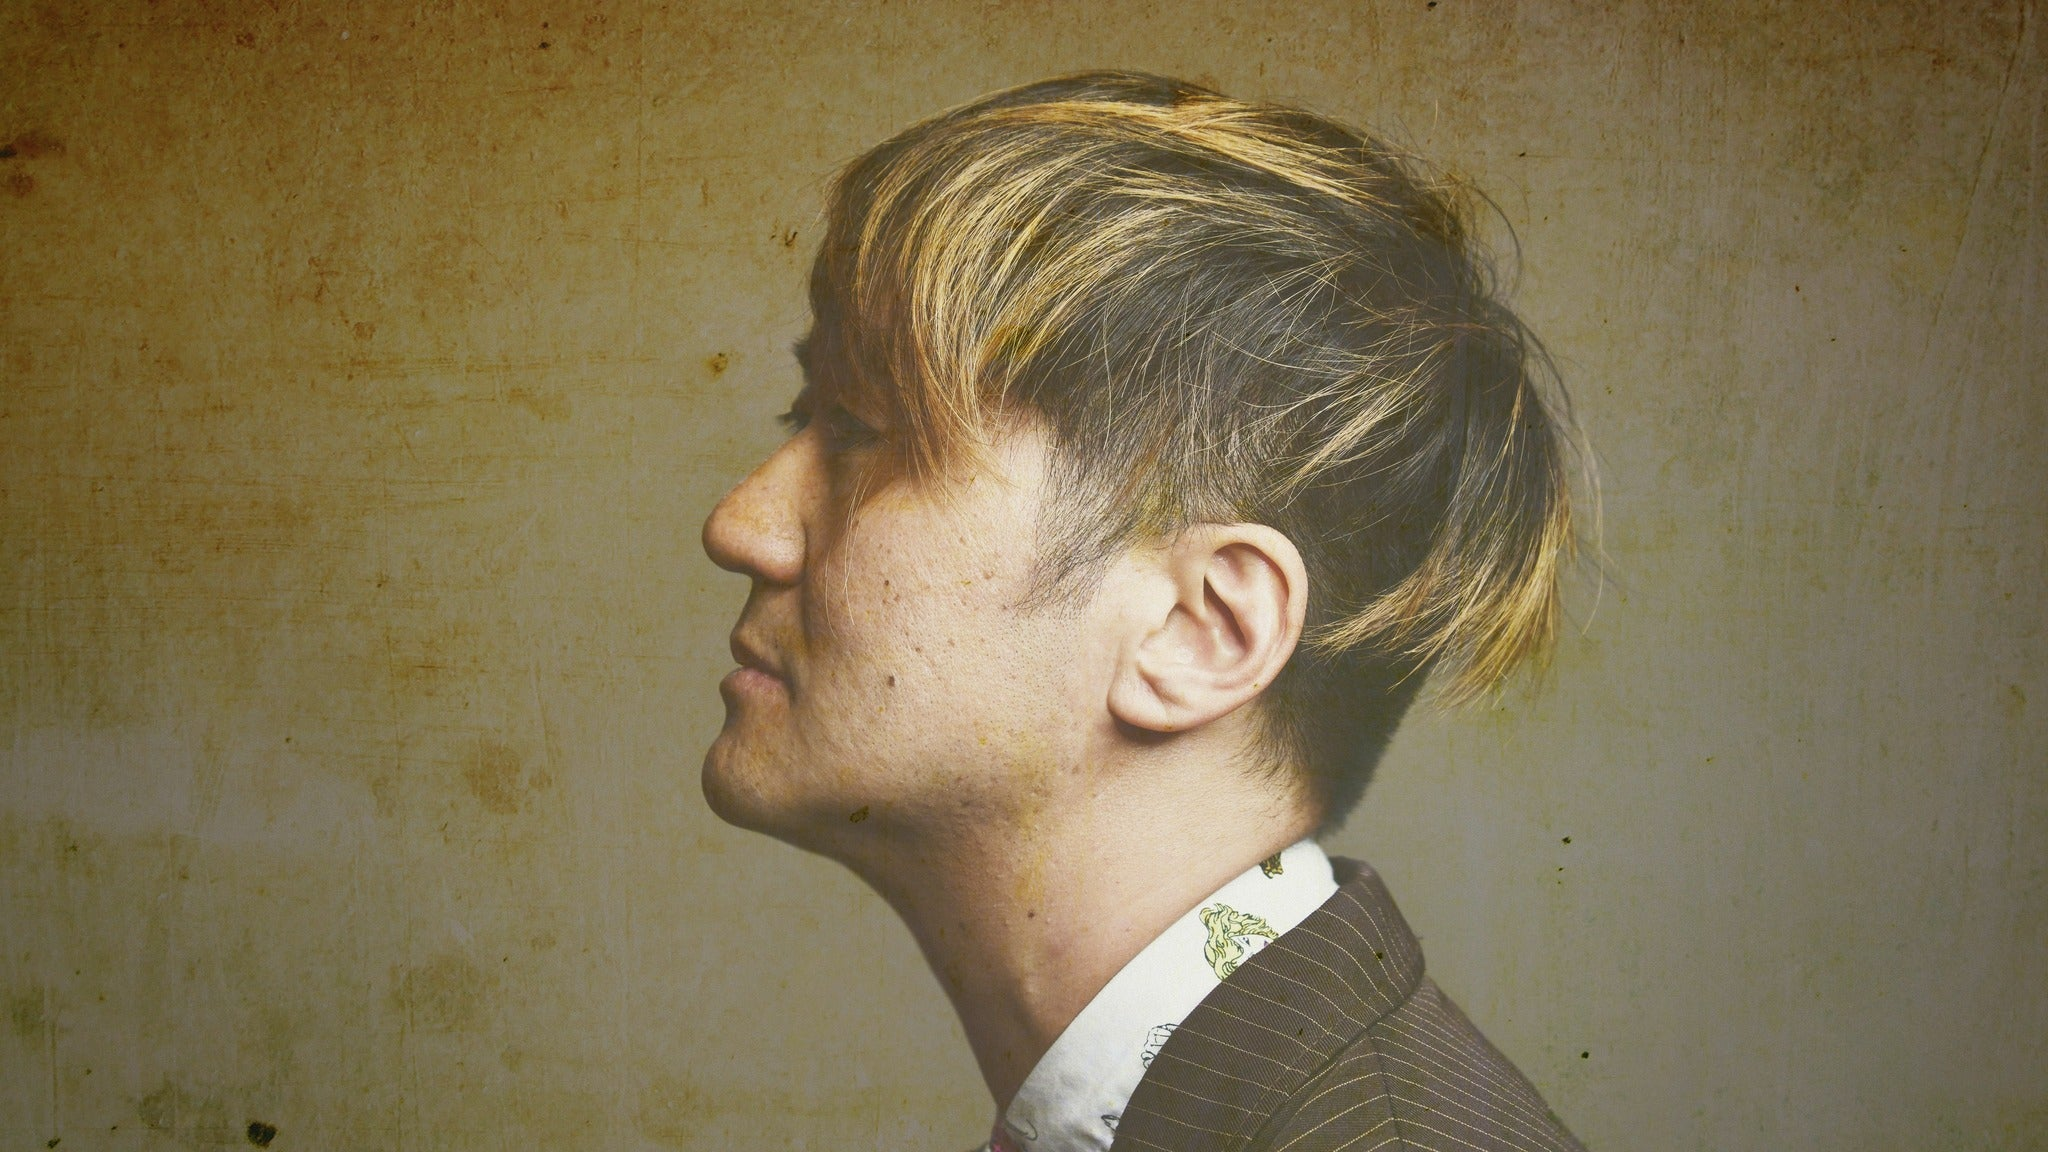 Kishi Bashi at California Center for the Arts